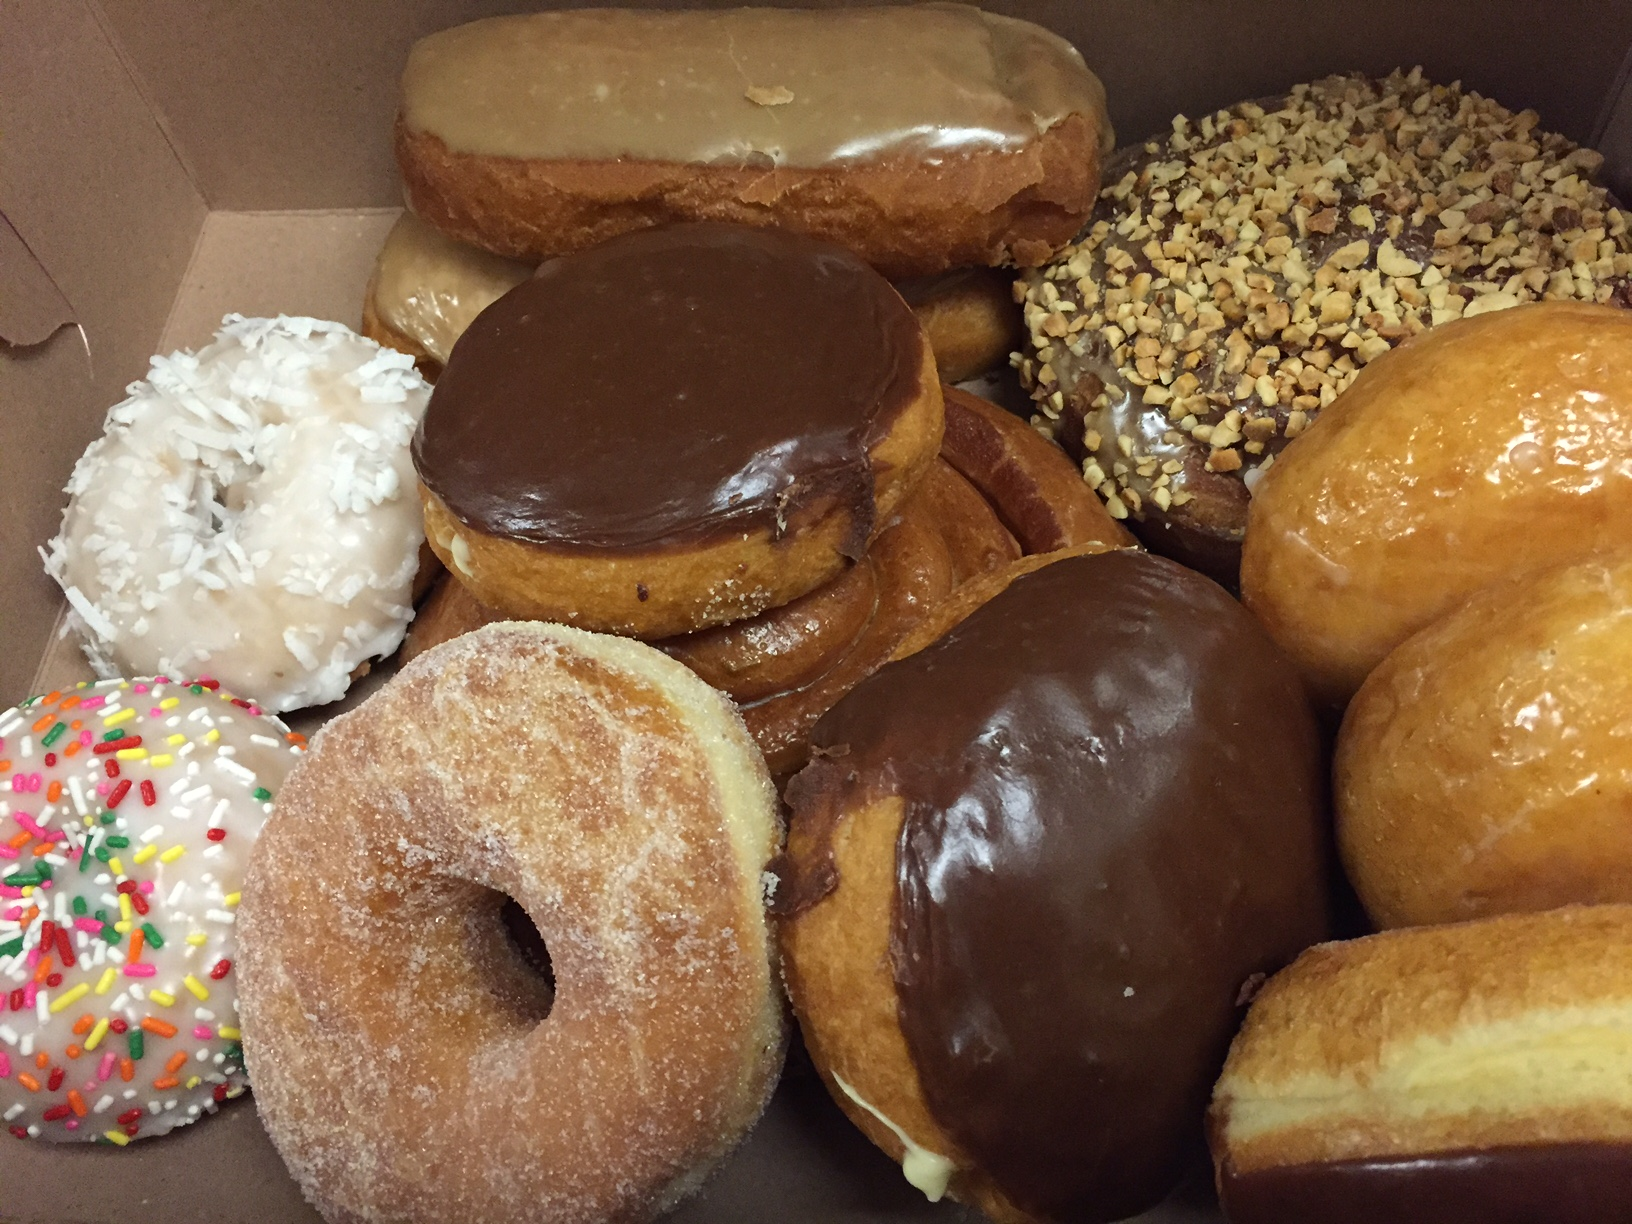 Ronald's Donuts offers an array of flavors, photo by Kristine McKenzie.